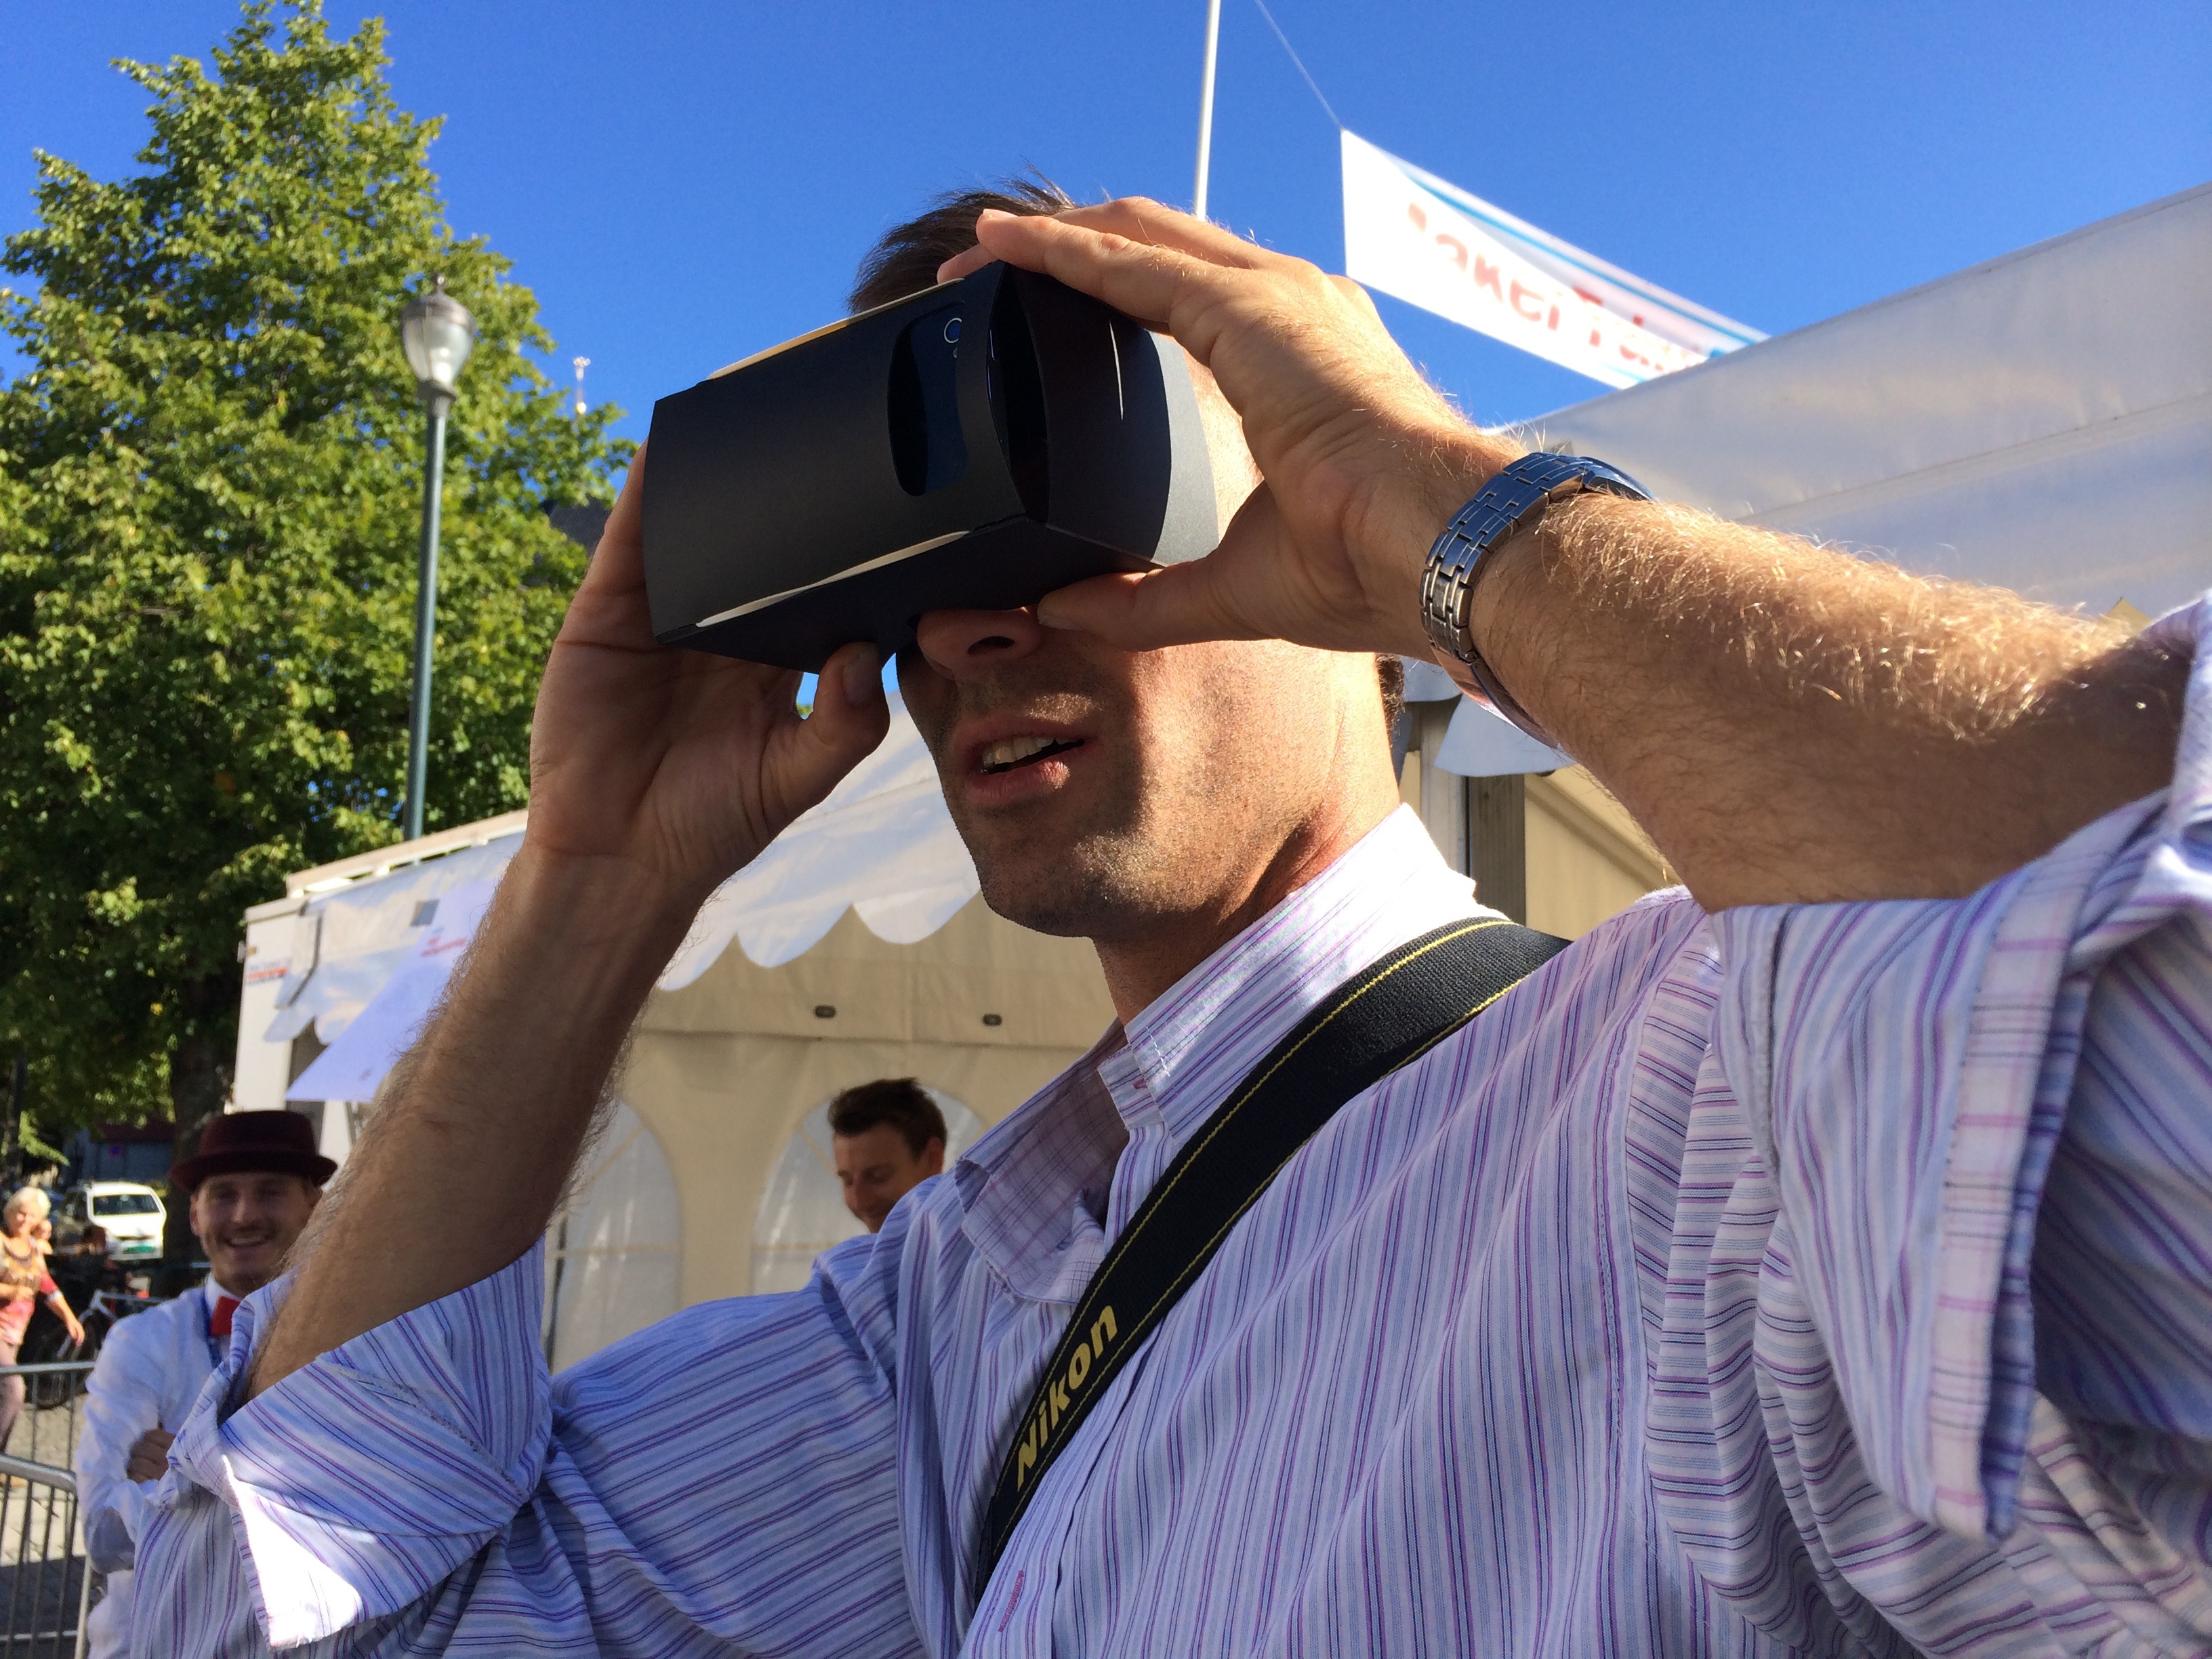 Google Cardboard and Go Pro mix it up at Maker Faire Trondheim